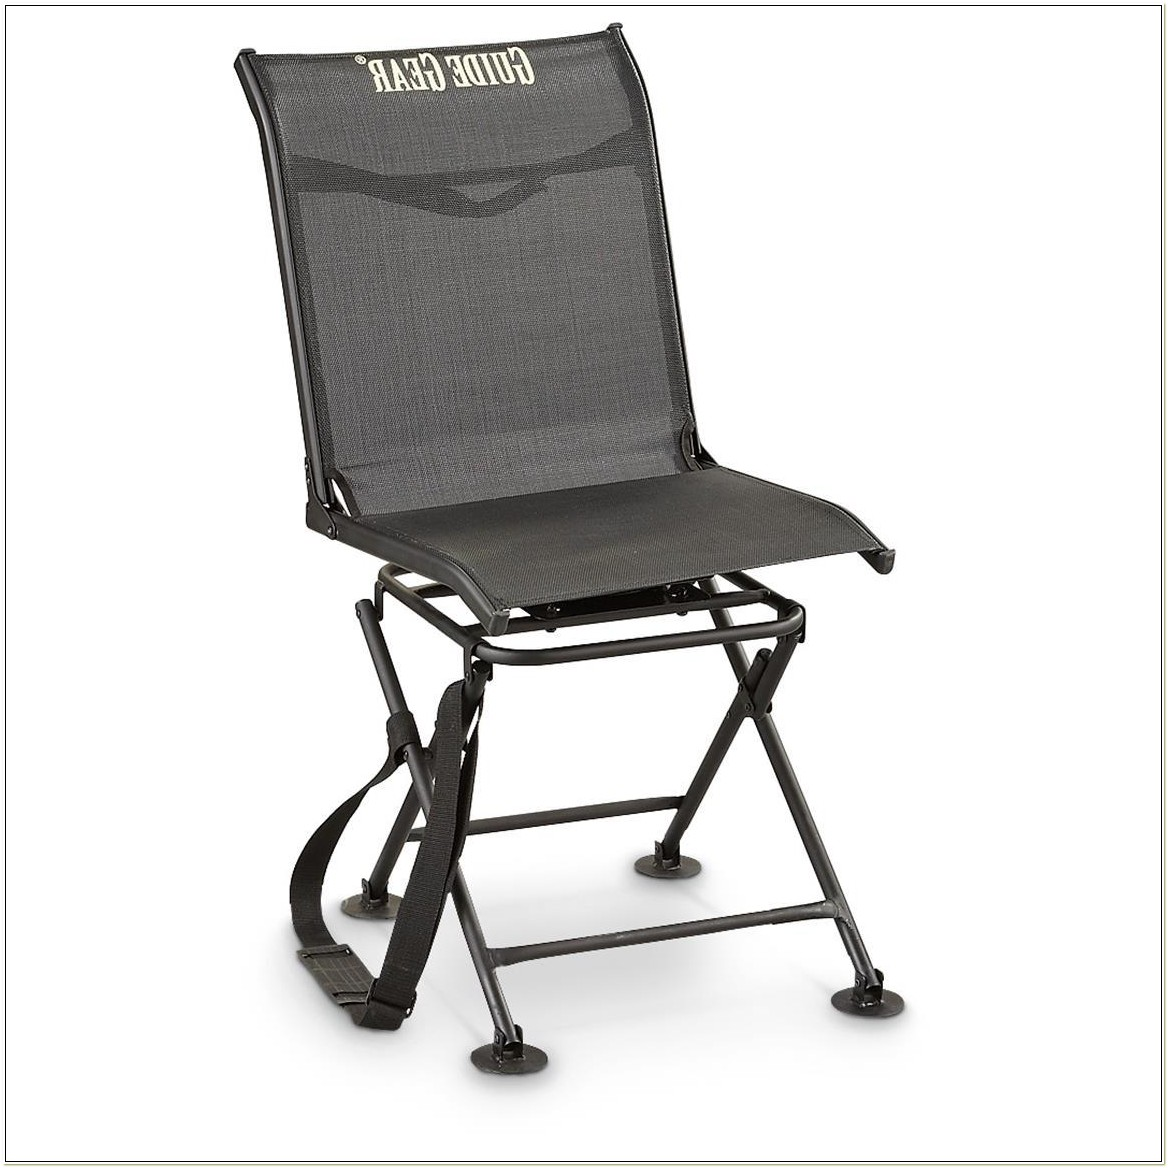 Swivel Hunting Chair For Hunting Blinds